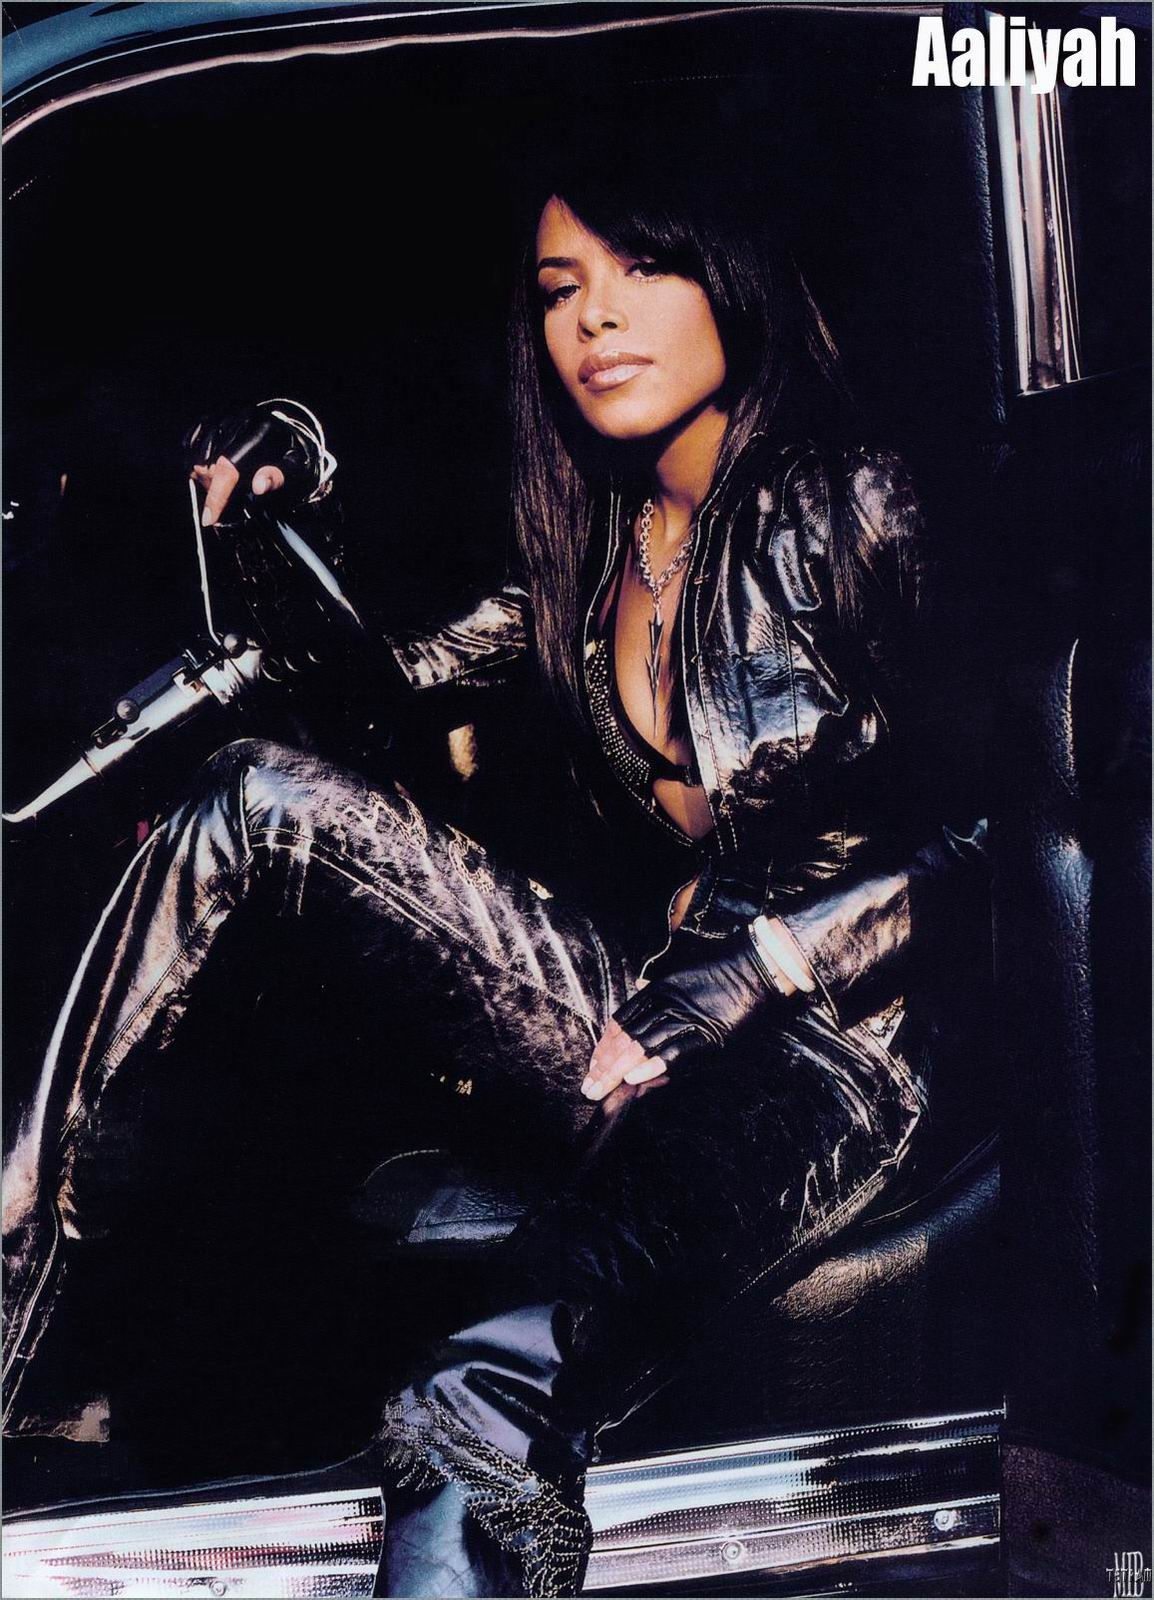 Aaliyah wallpapers 9 Best Aaliyah pictures 1154x1600